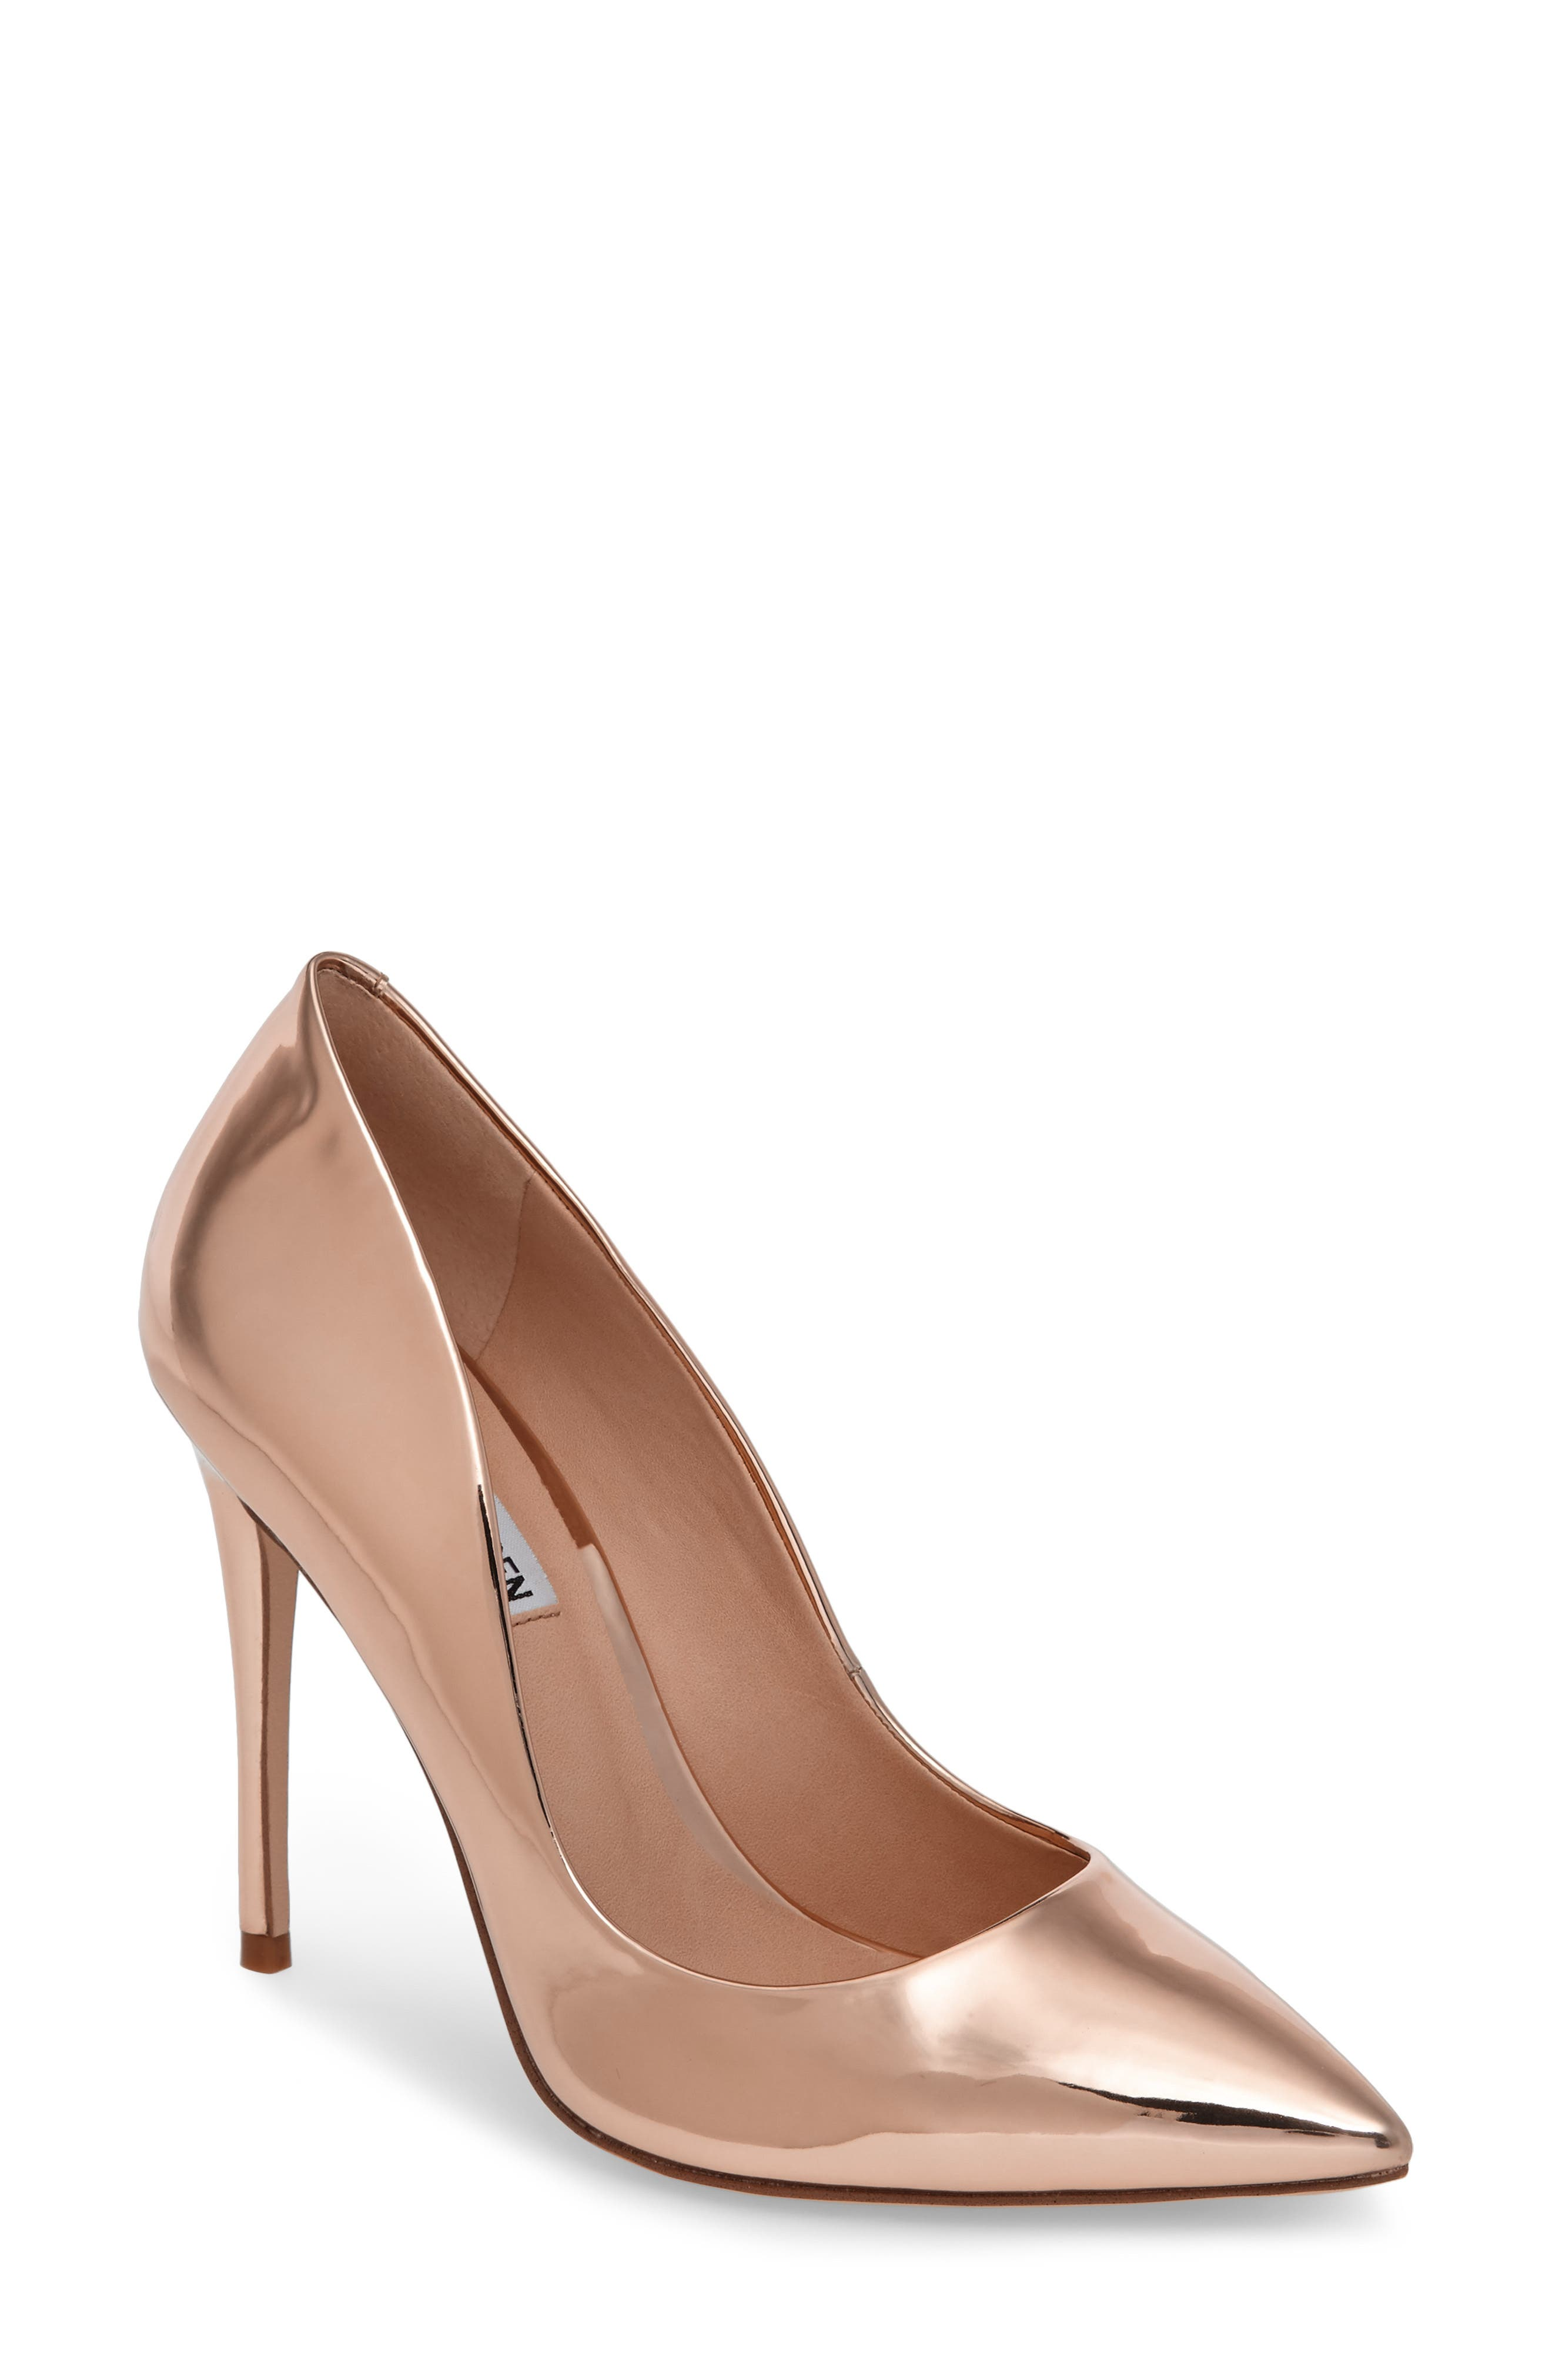 Pumps With Gold Heel bGfpuc6T